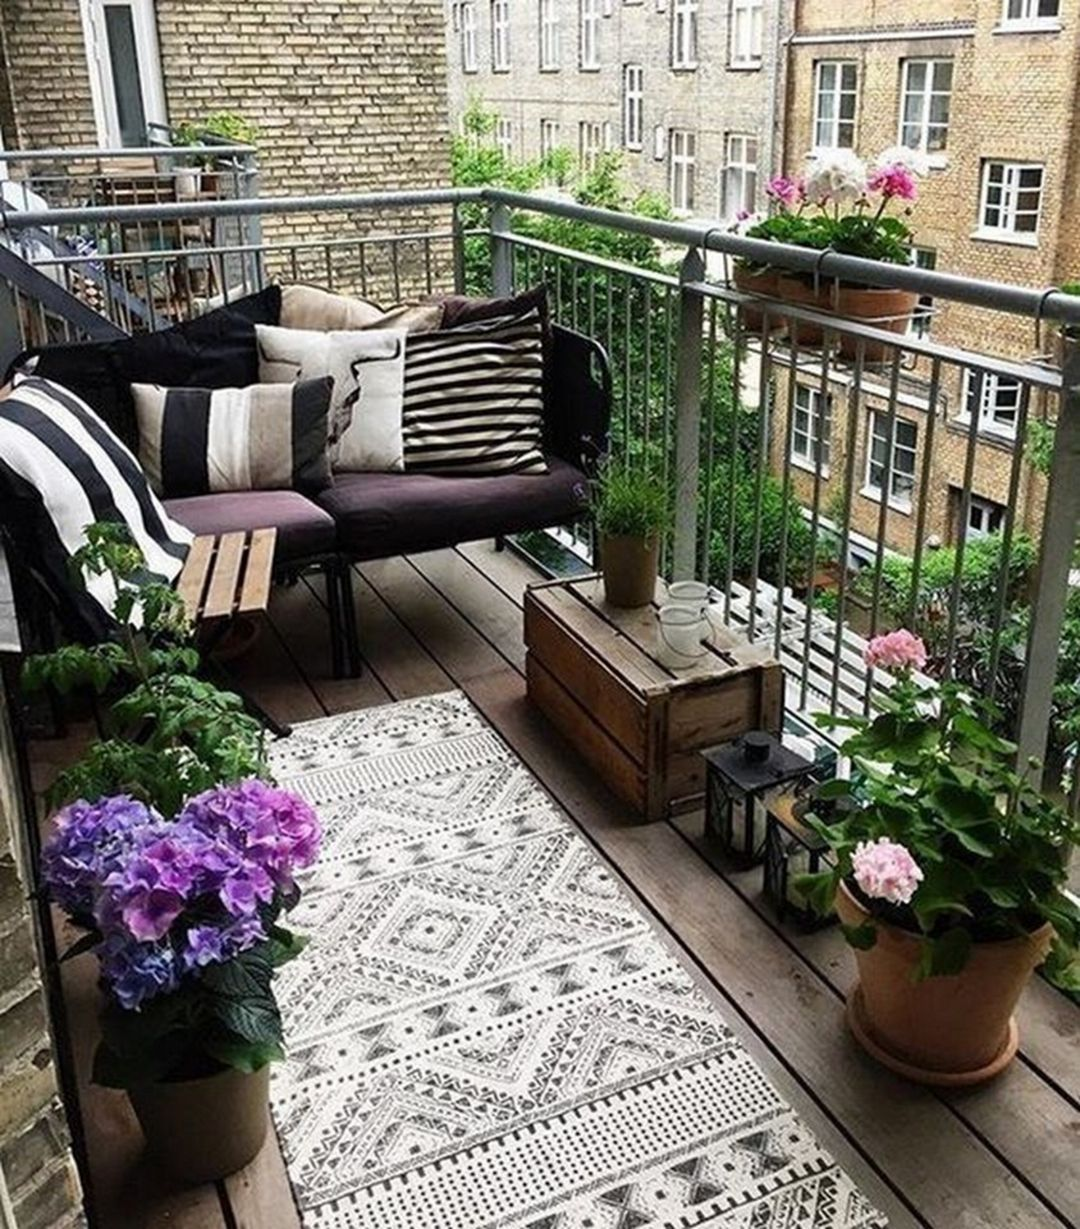 23 Wonderful Small Balcony Design Ideas To Beautify Your Apartment